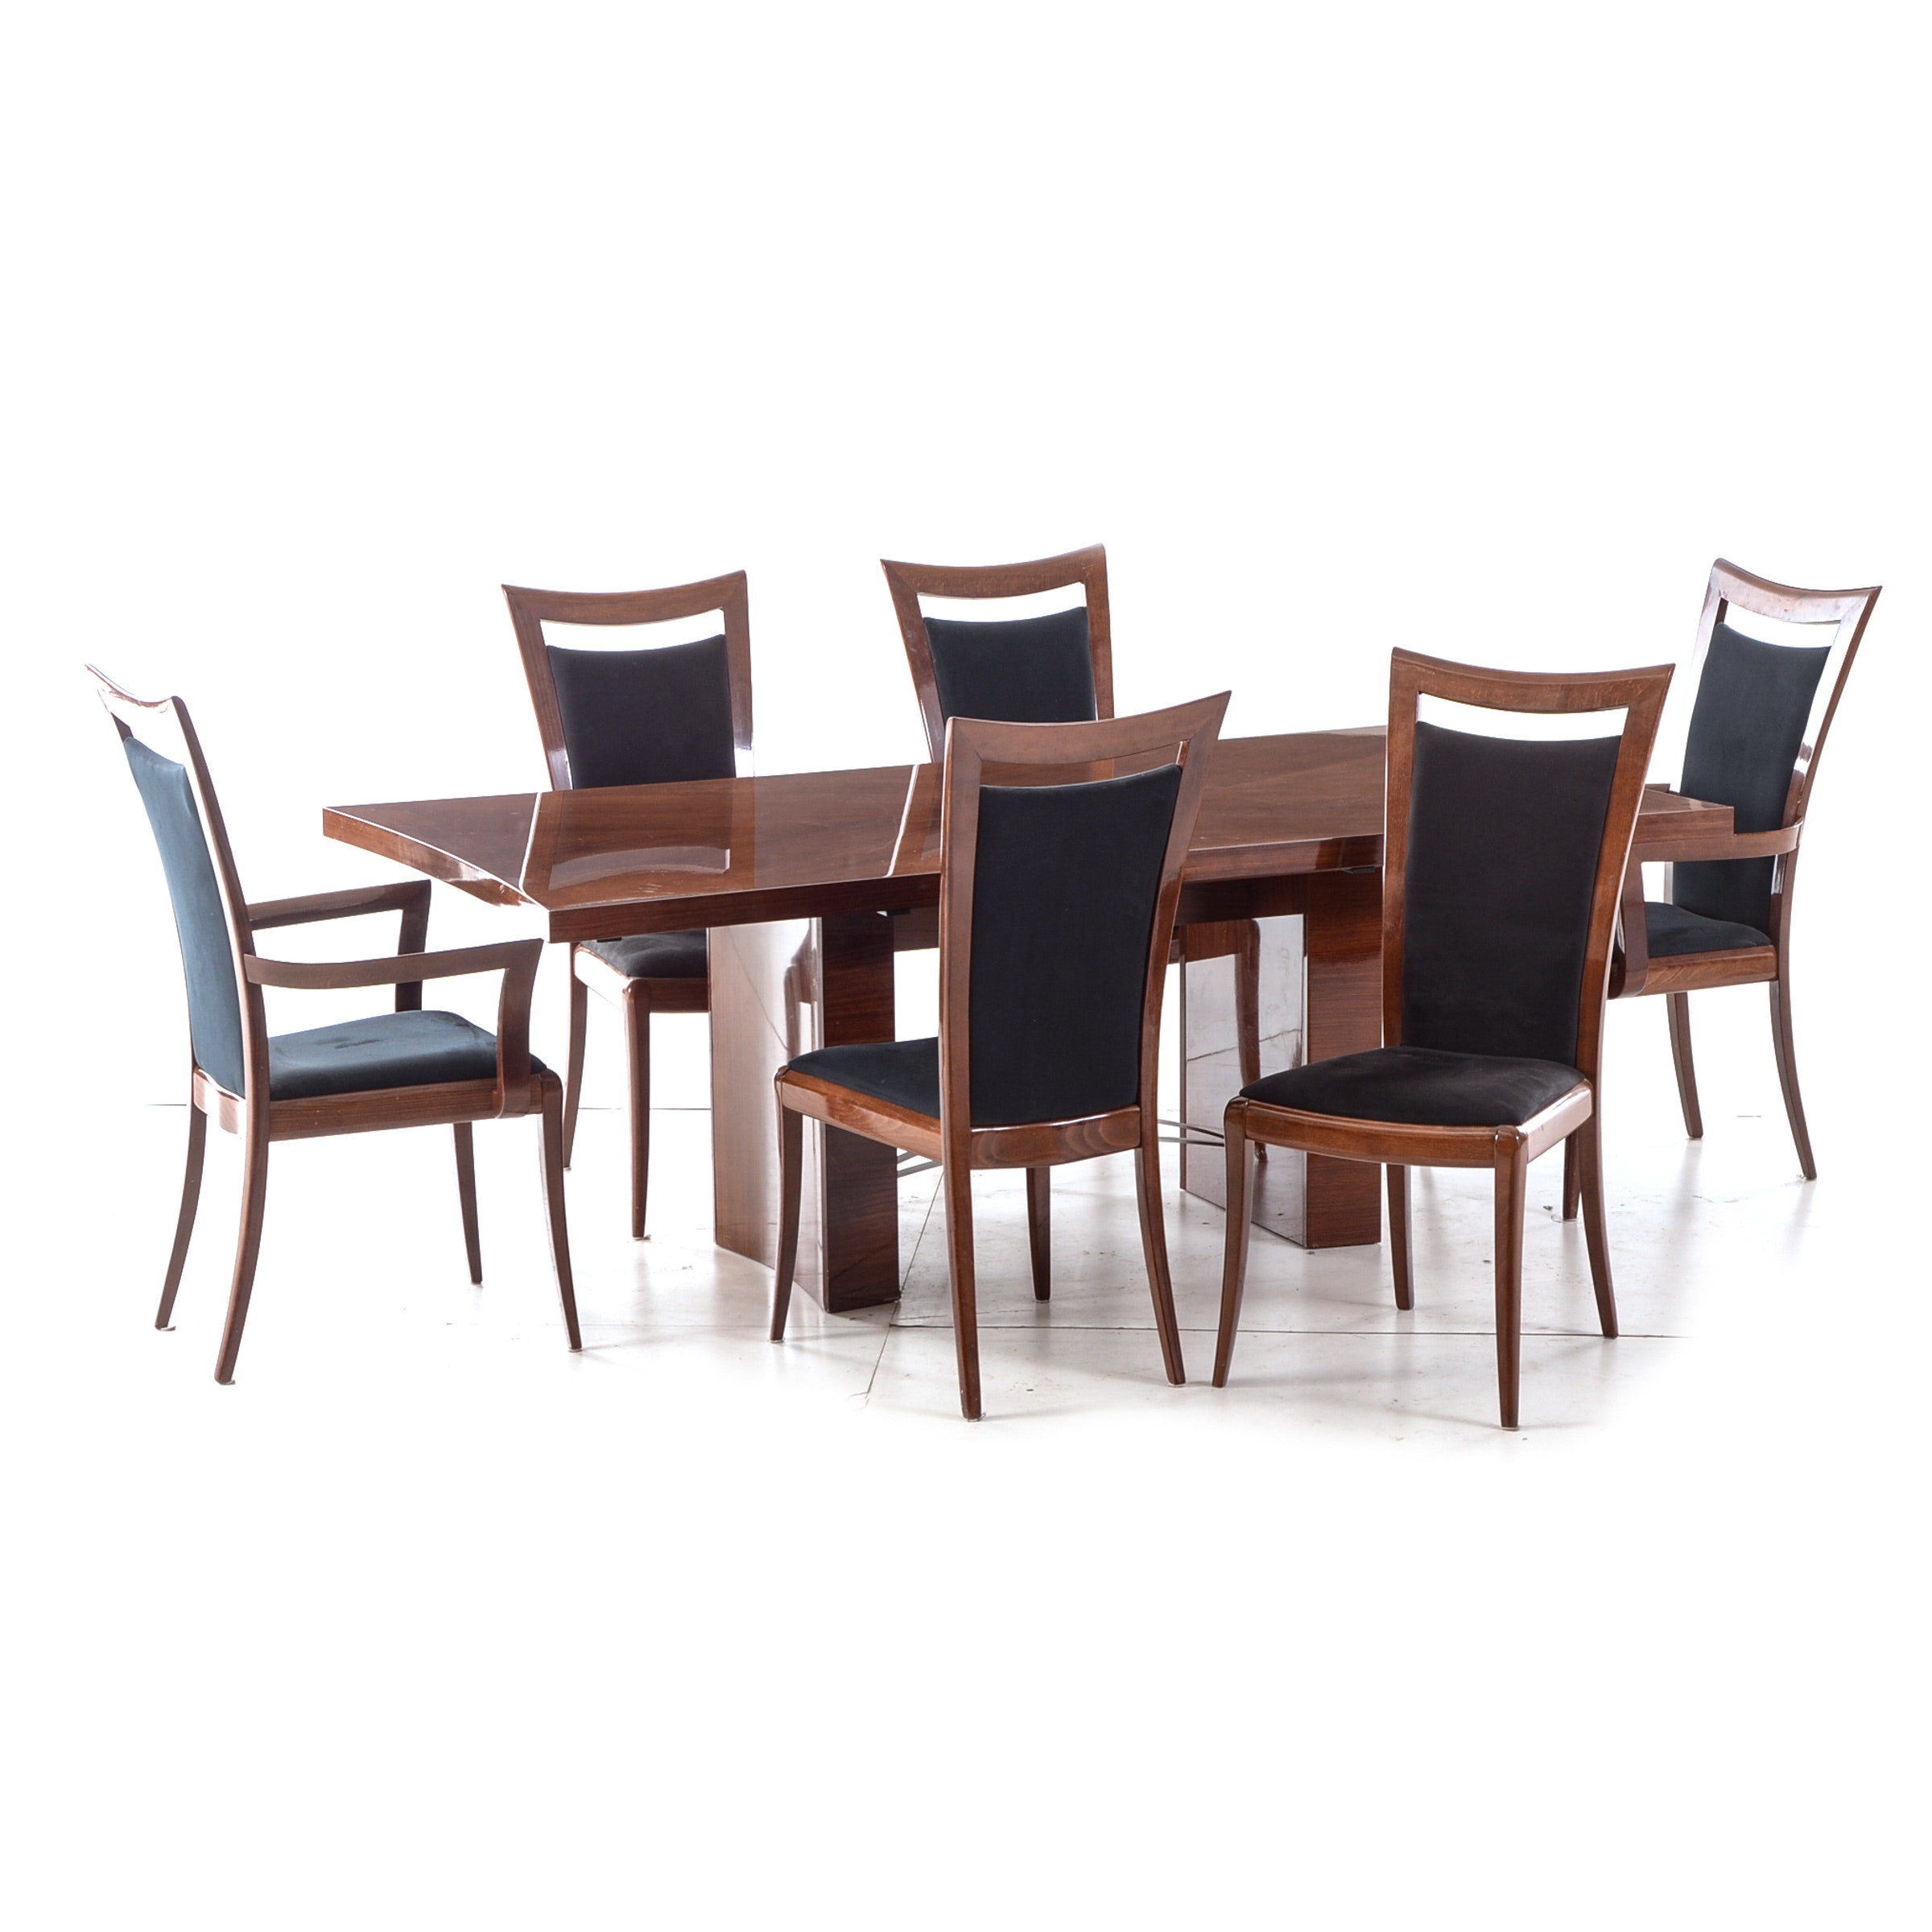 Italian Modern Walnut Dining Table and Six Chairs